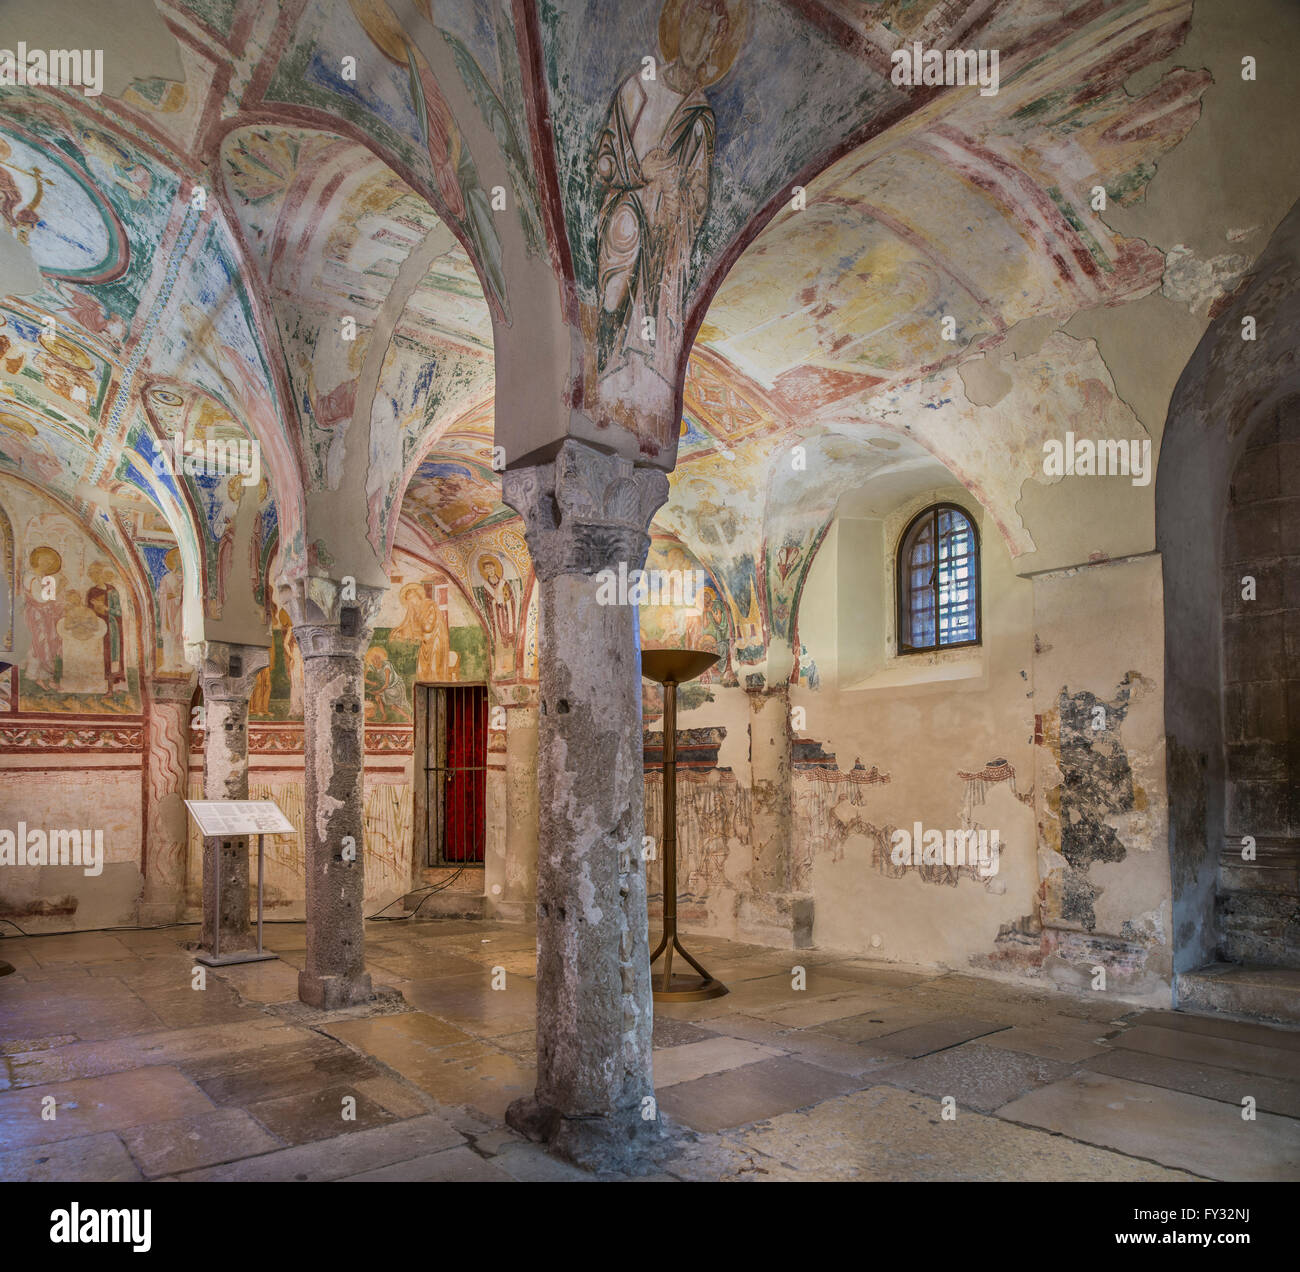 Maxentine crypt, 9th century., under the high altar of the Roman basilica, famous frescos from the 12th century, - Stock Image